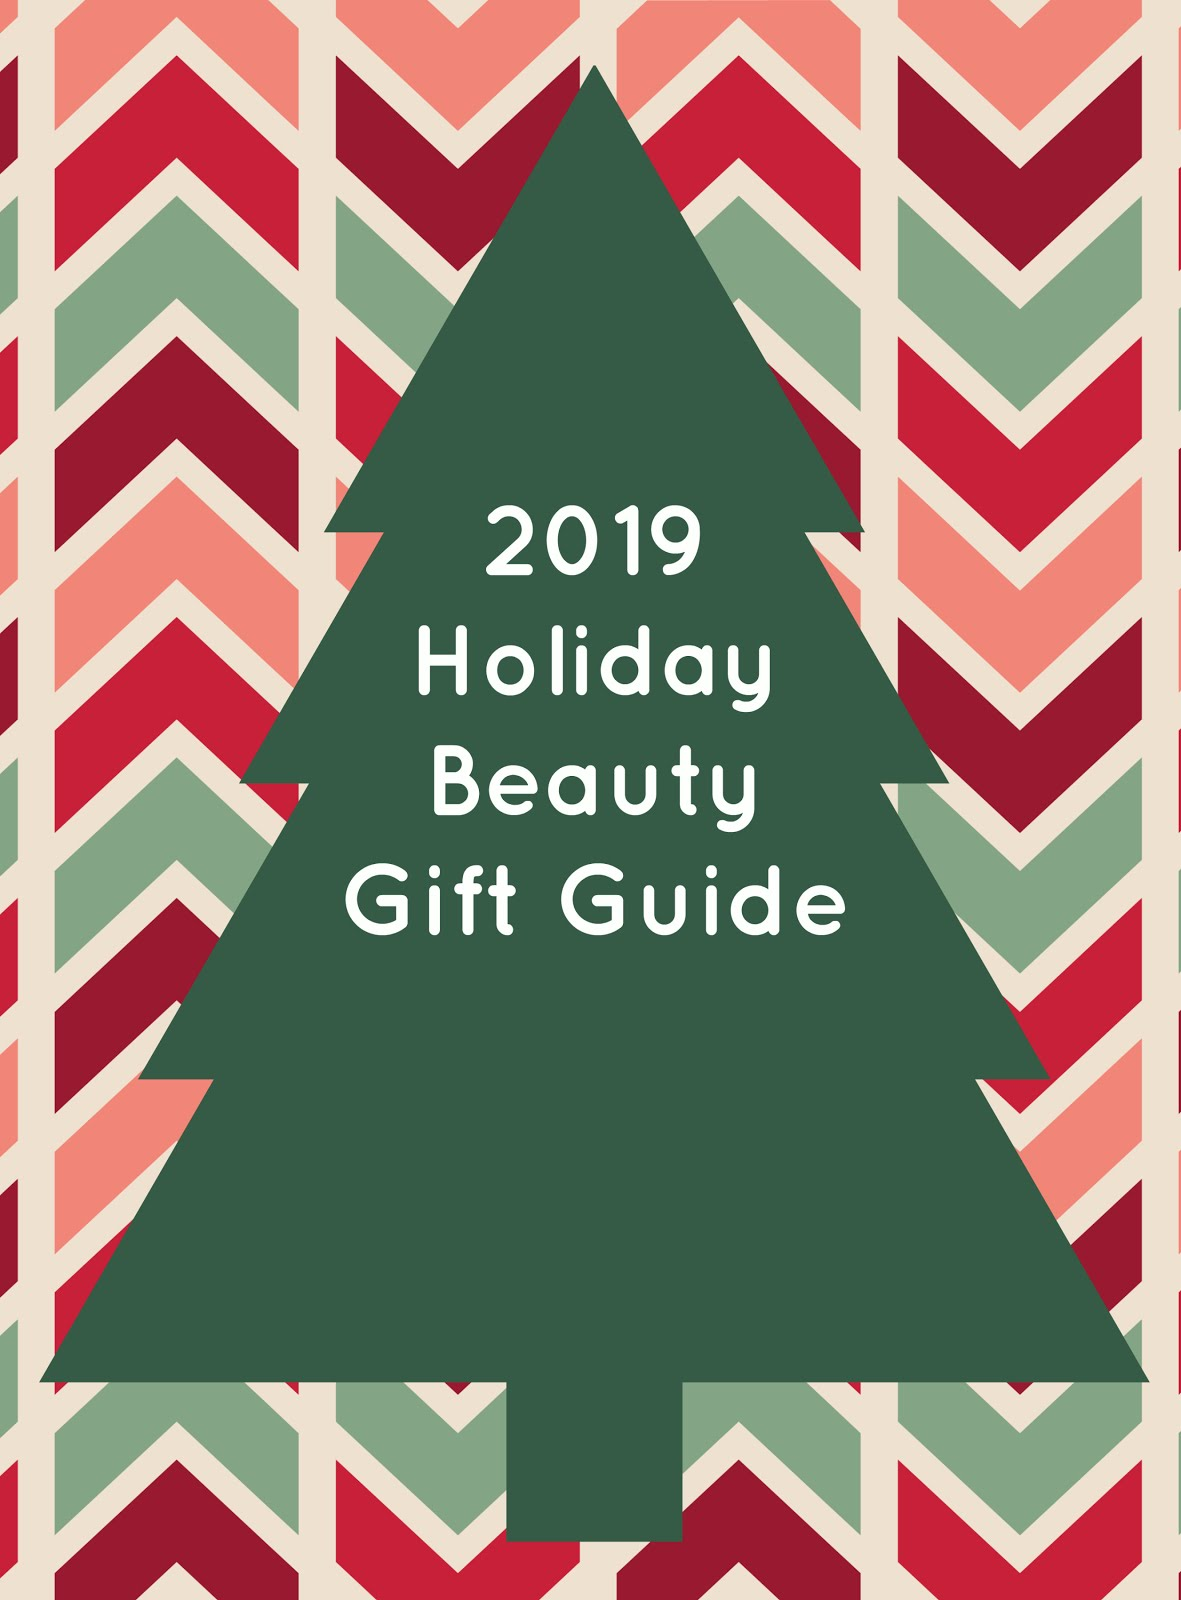 2019 Holiday Beauty Gift Guide!